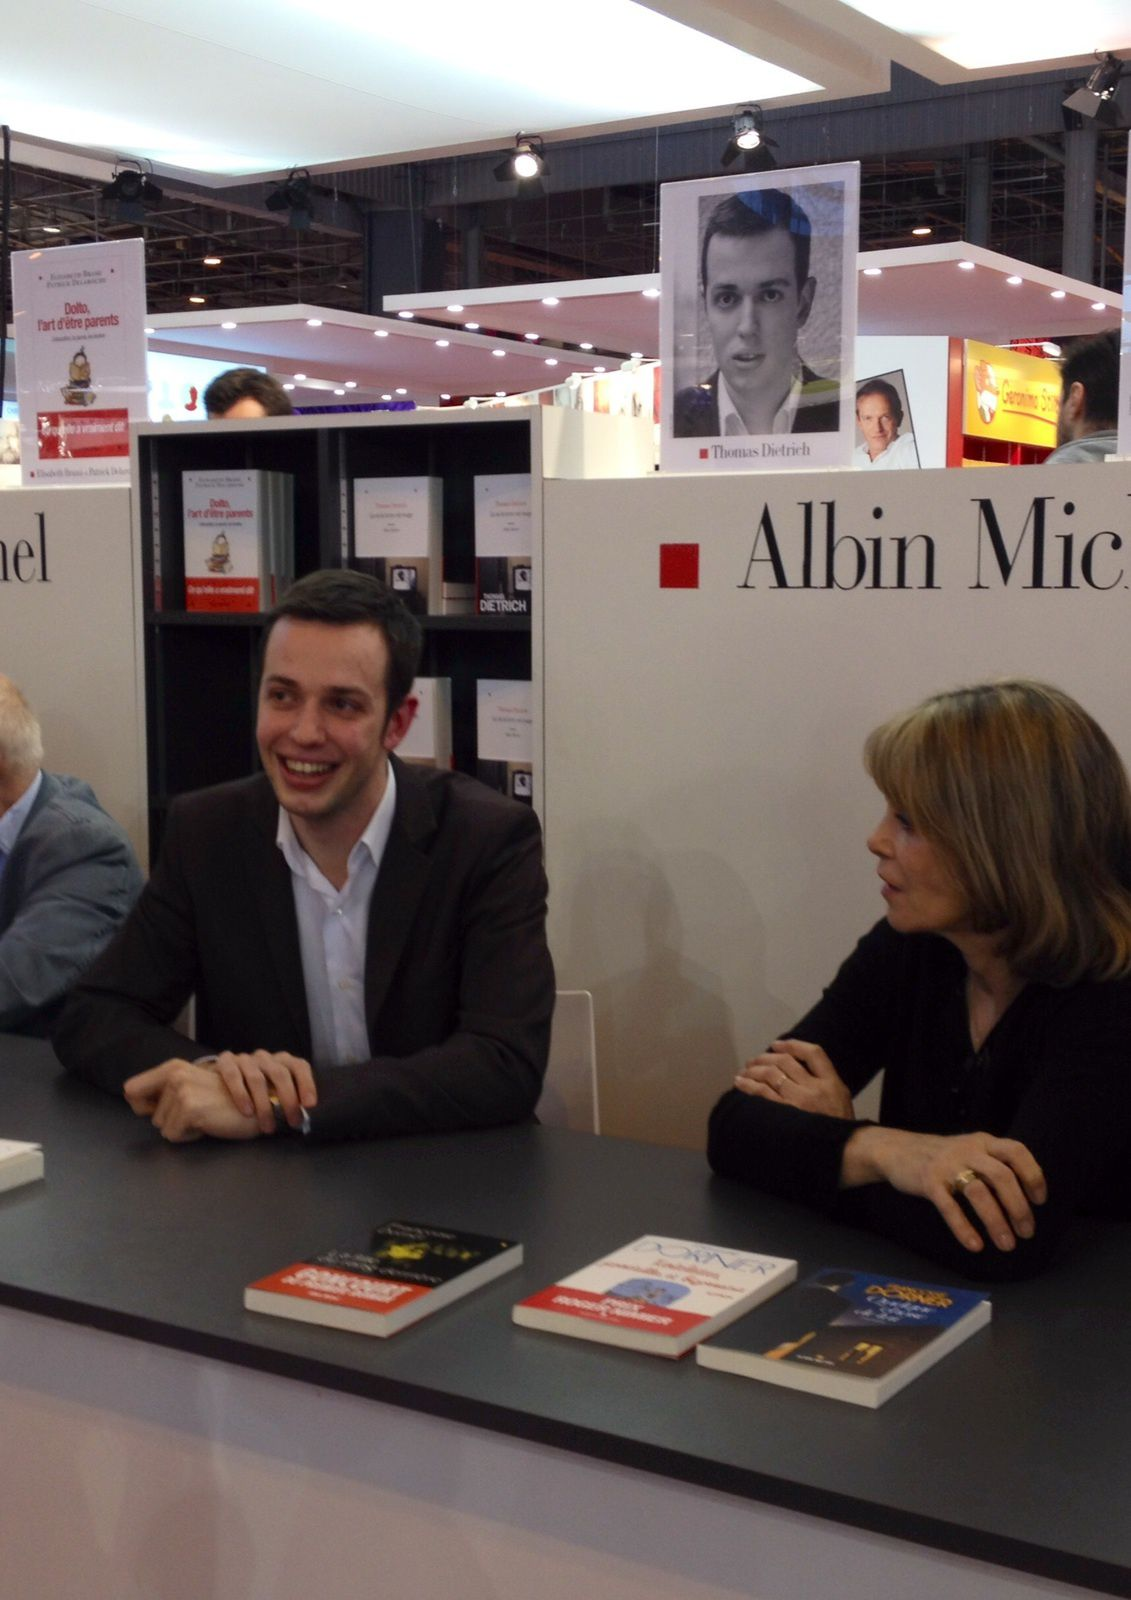 Salon du livre de Paris: l'écrivain Thomas Dietrich fera une interview publique